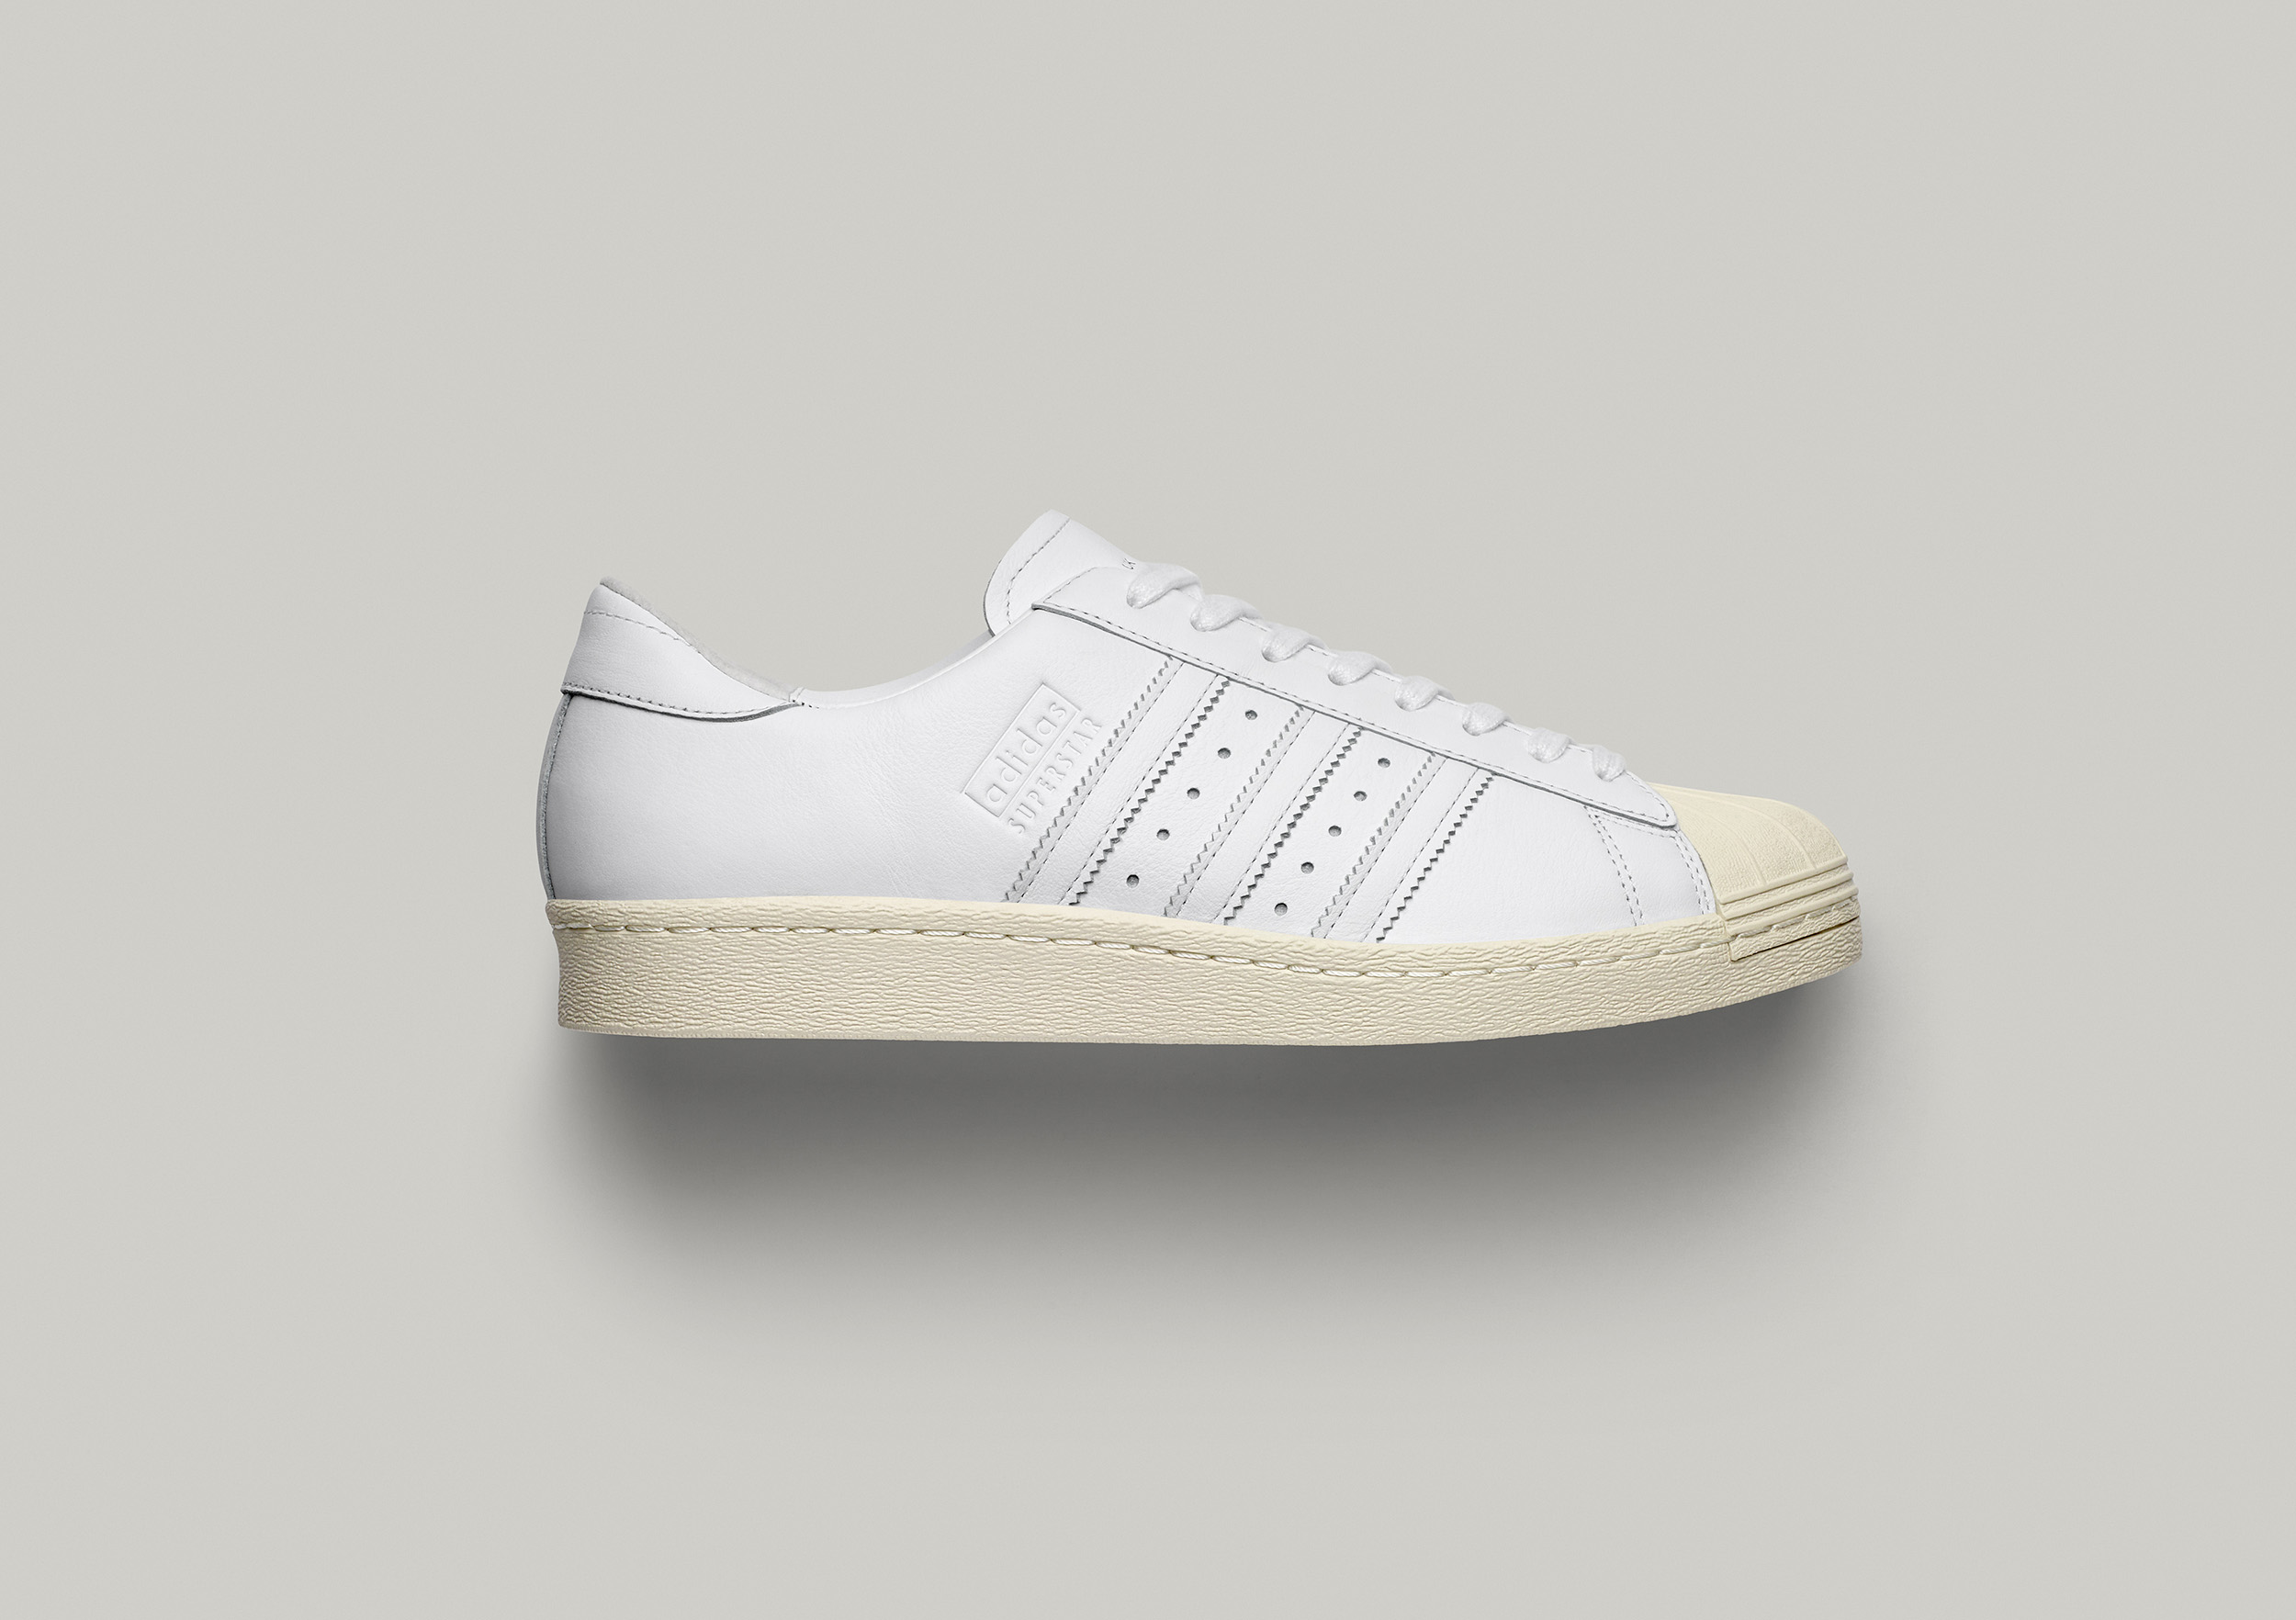 adidas Originals Is Giving Us All Their